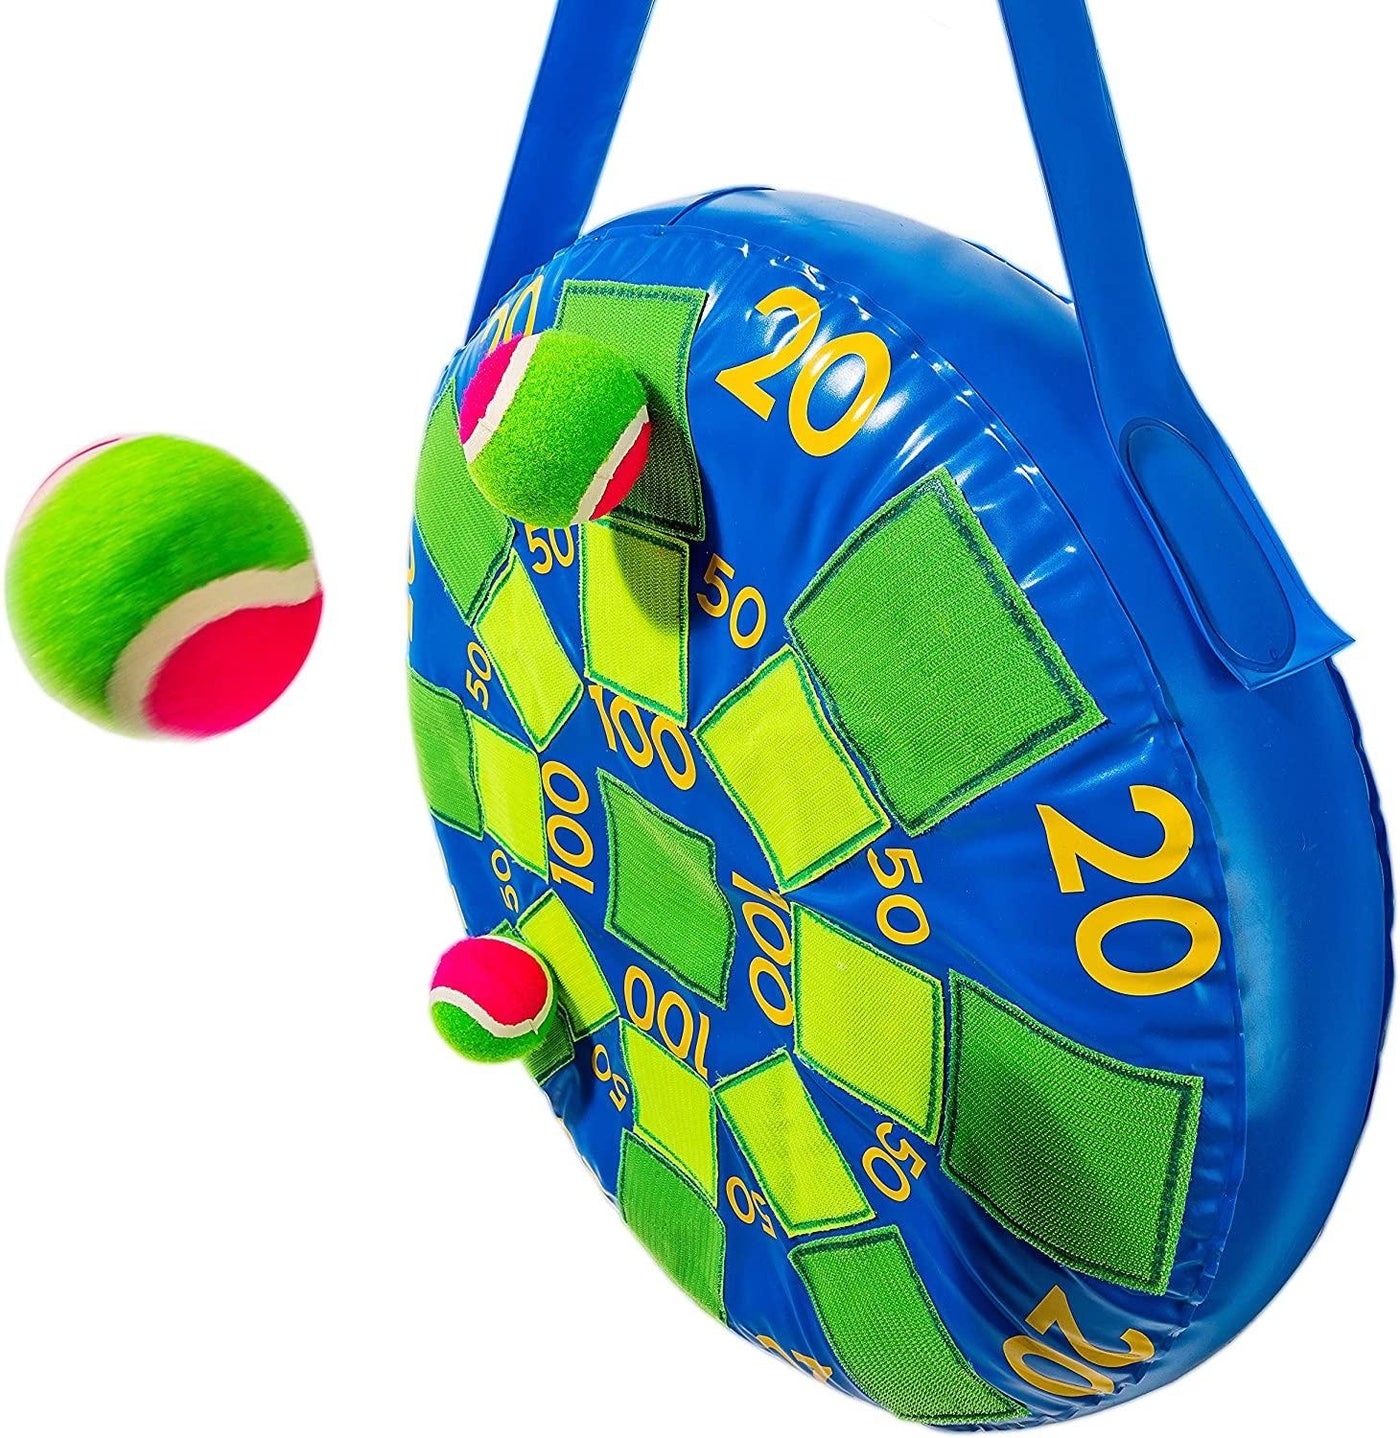 Kids Dart Board - Inflatable Dart Ball Game